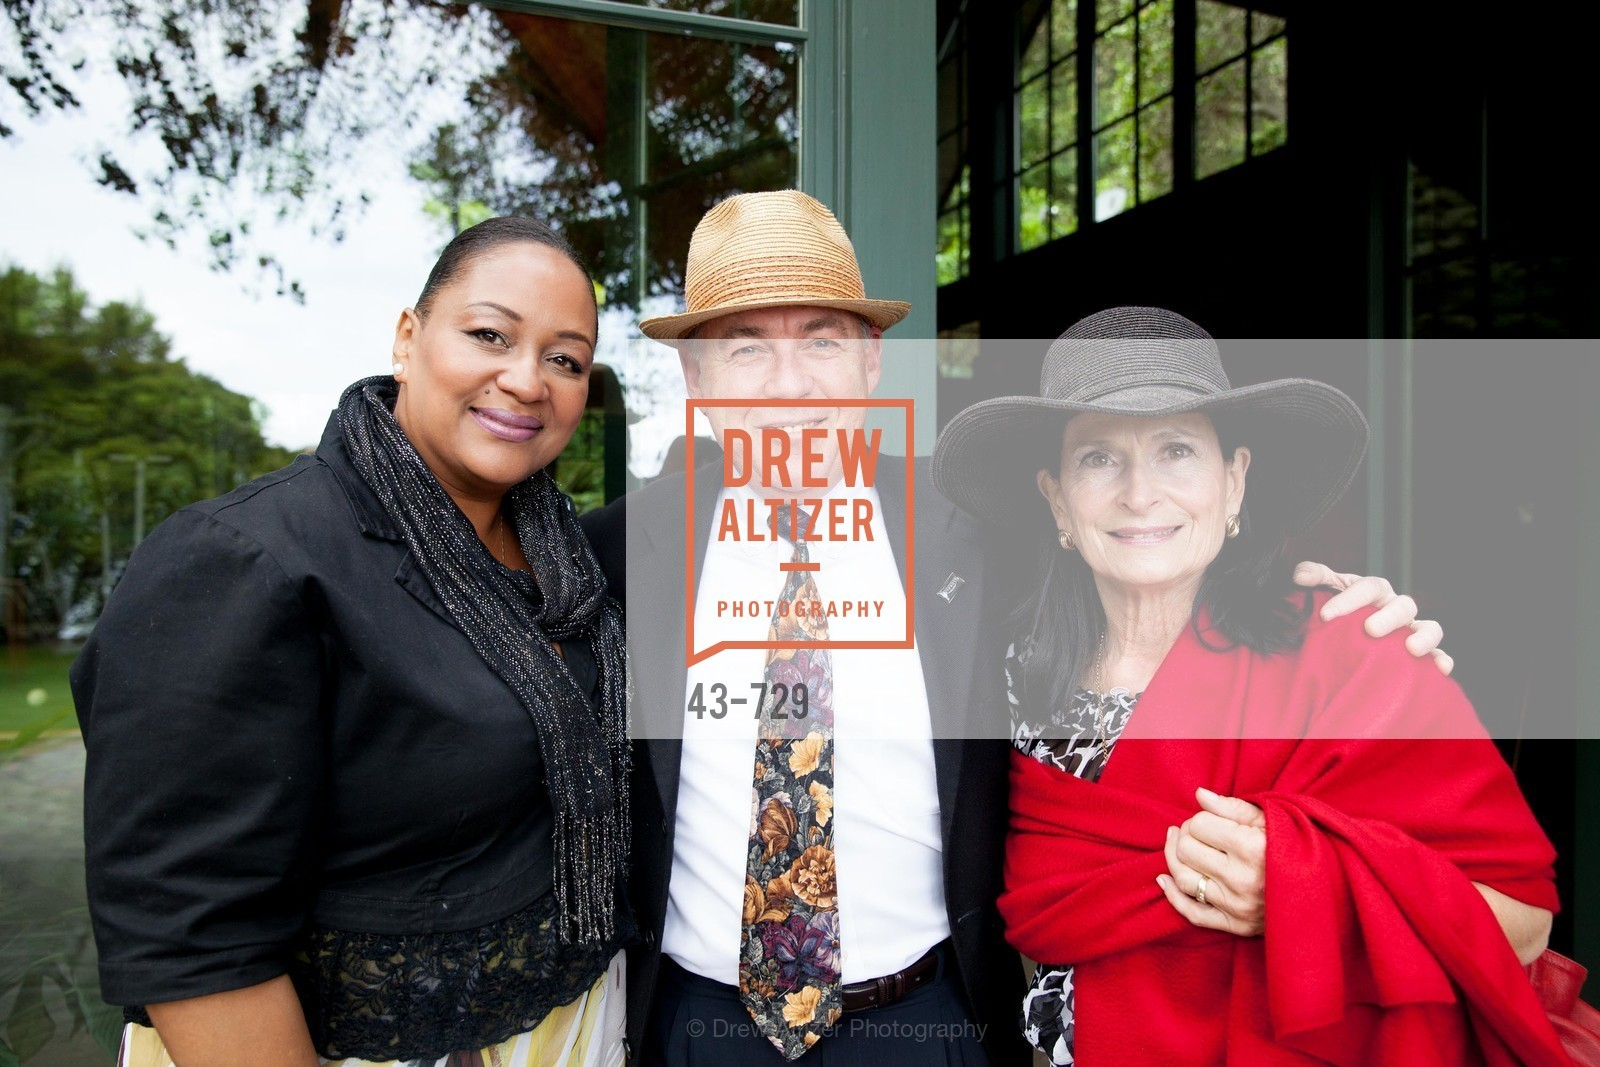 Gina Former, Rory Campbell, Carol Campbell, THE TRUST FOR PUBLIC LAND Luncheon Hosted by THE DREVER FAMILY FOUNDATION, US, May 15th, 2015,Drew Altizer, Drew Altizer Photography, full-service agency, private events, San Francisco photographer, photographer california